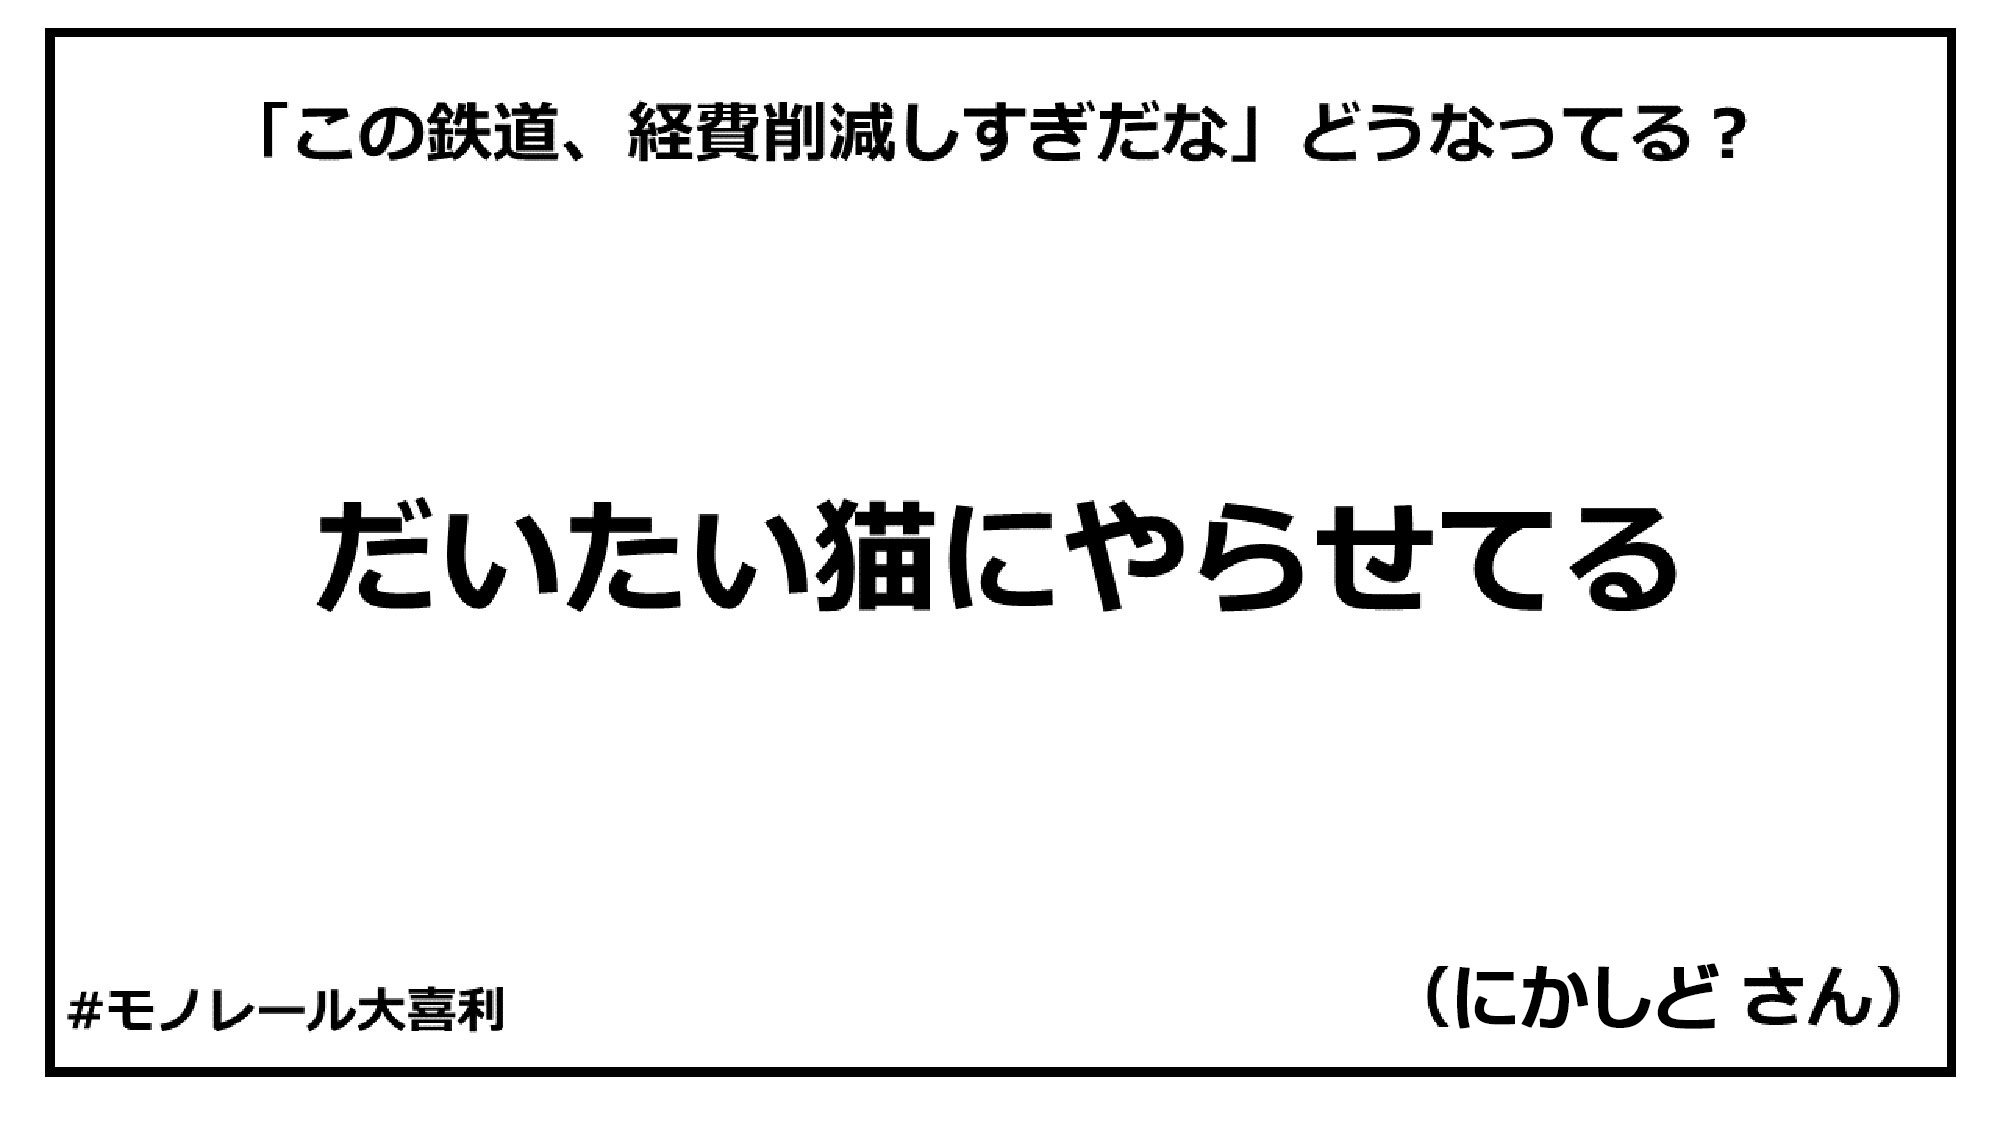 ogiri_answer_28_11_re.jpg